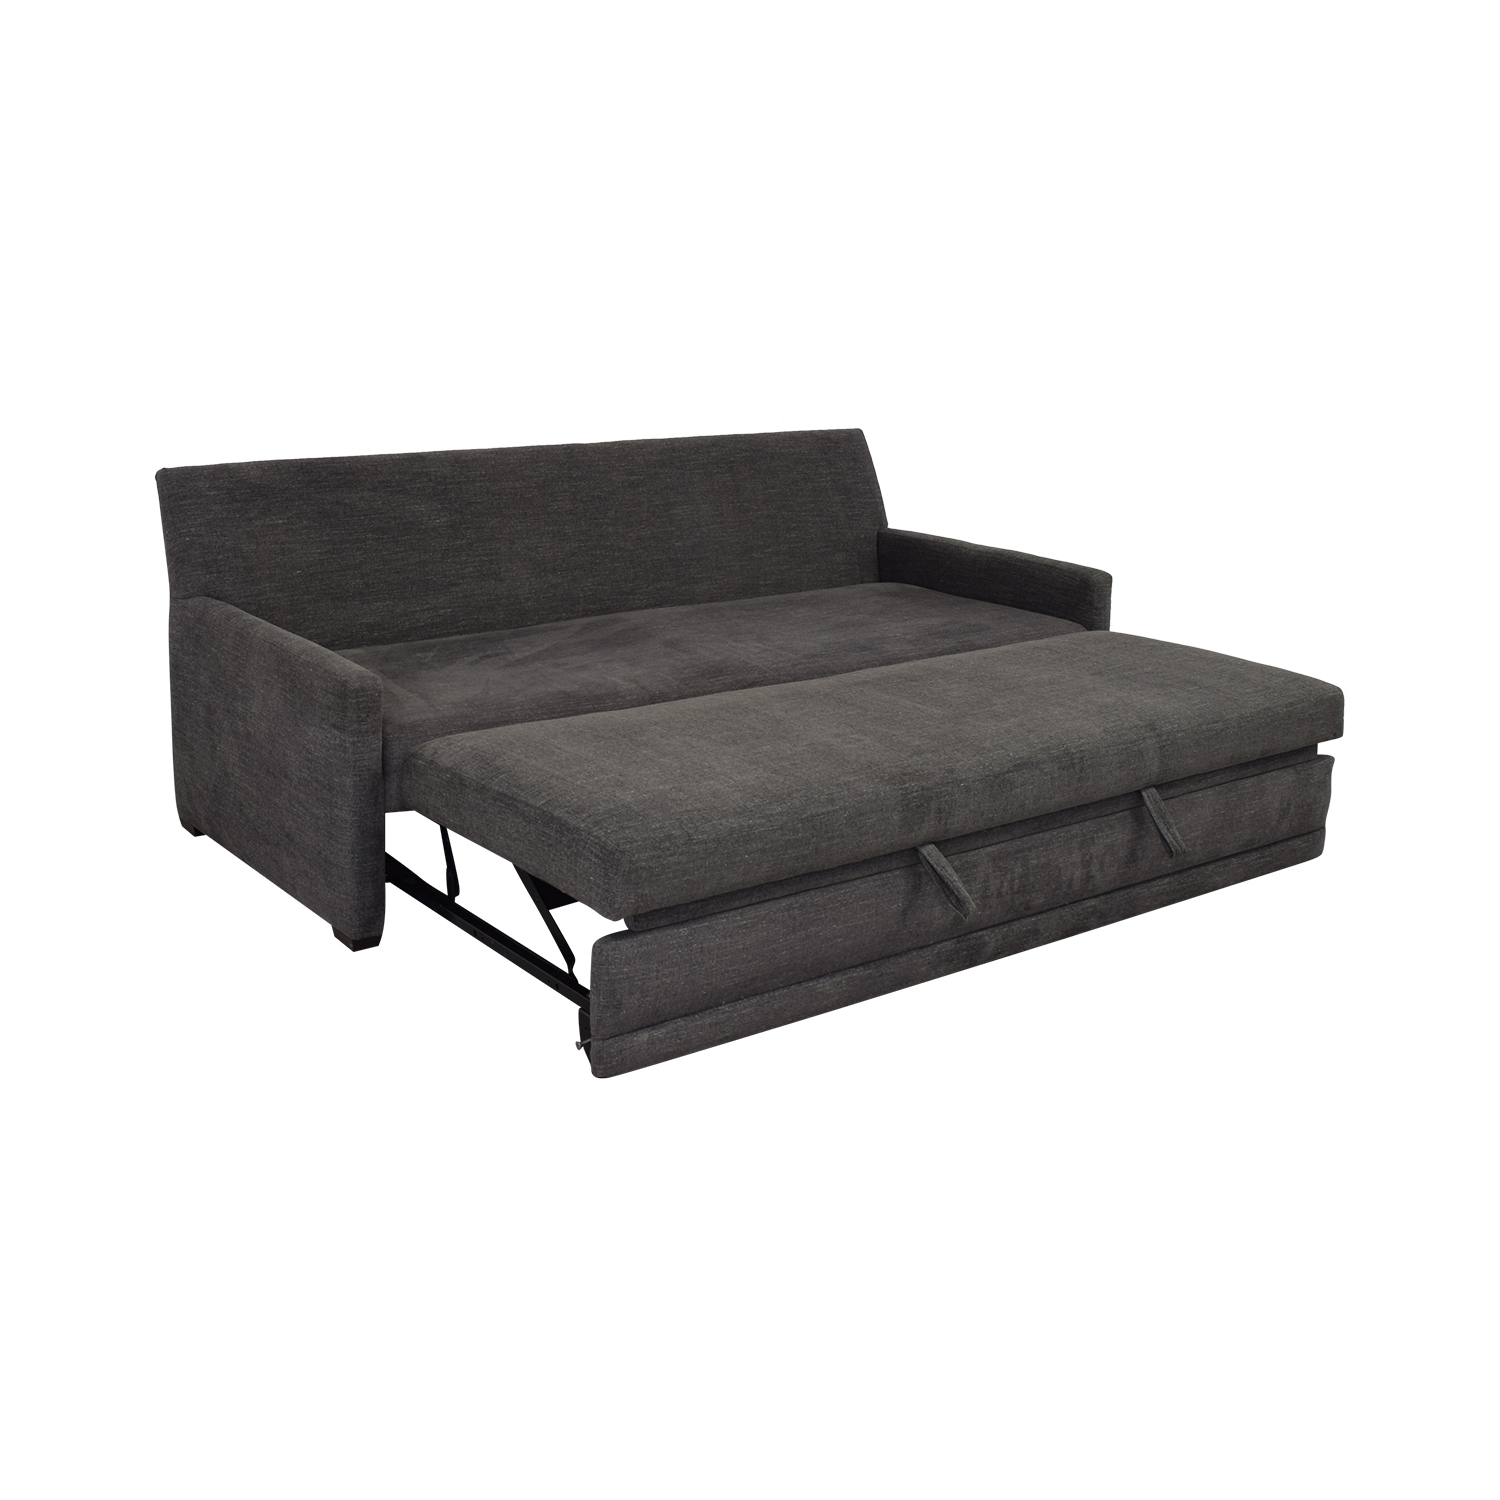 Crate & Barrel Crate & Barrel Reston Queen Trundle Sleeper Sofa Grey